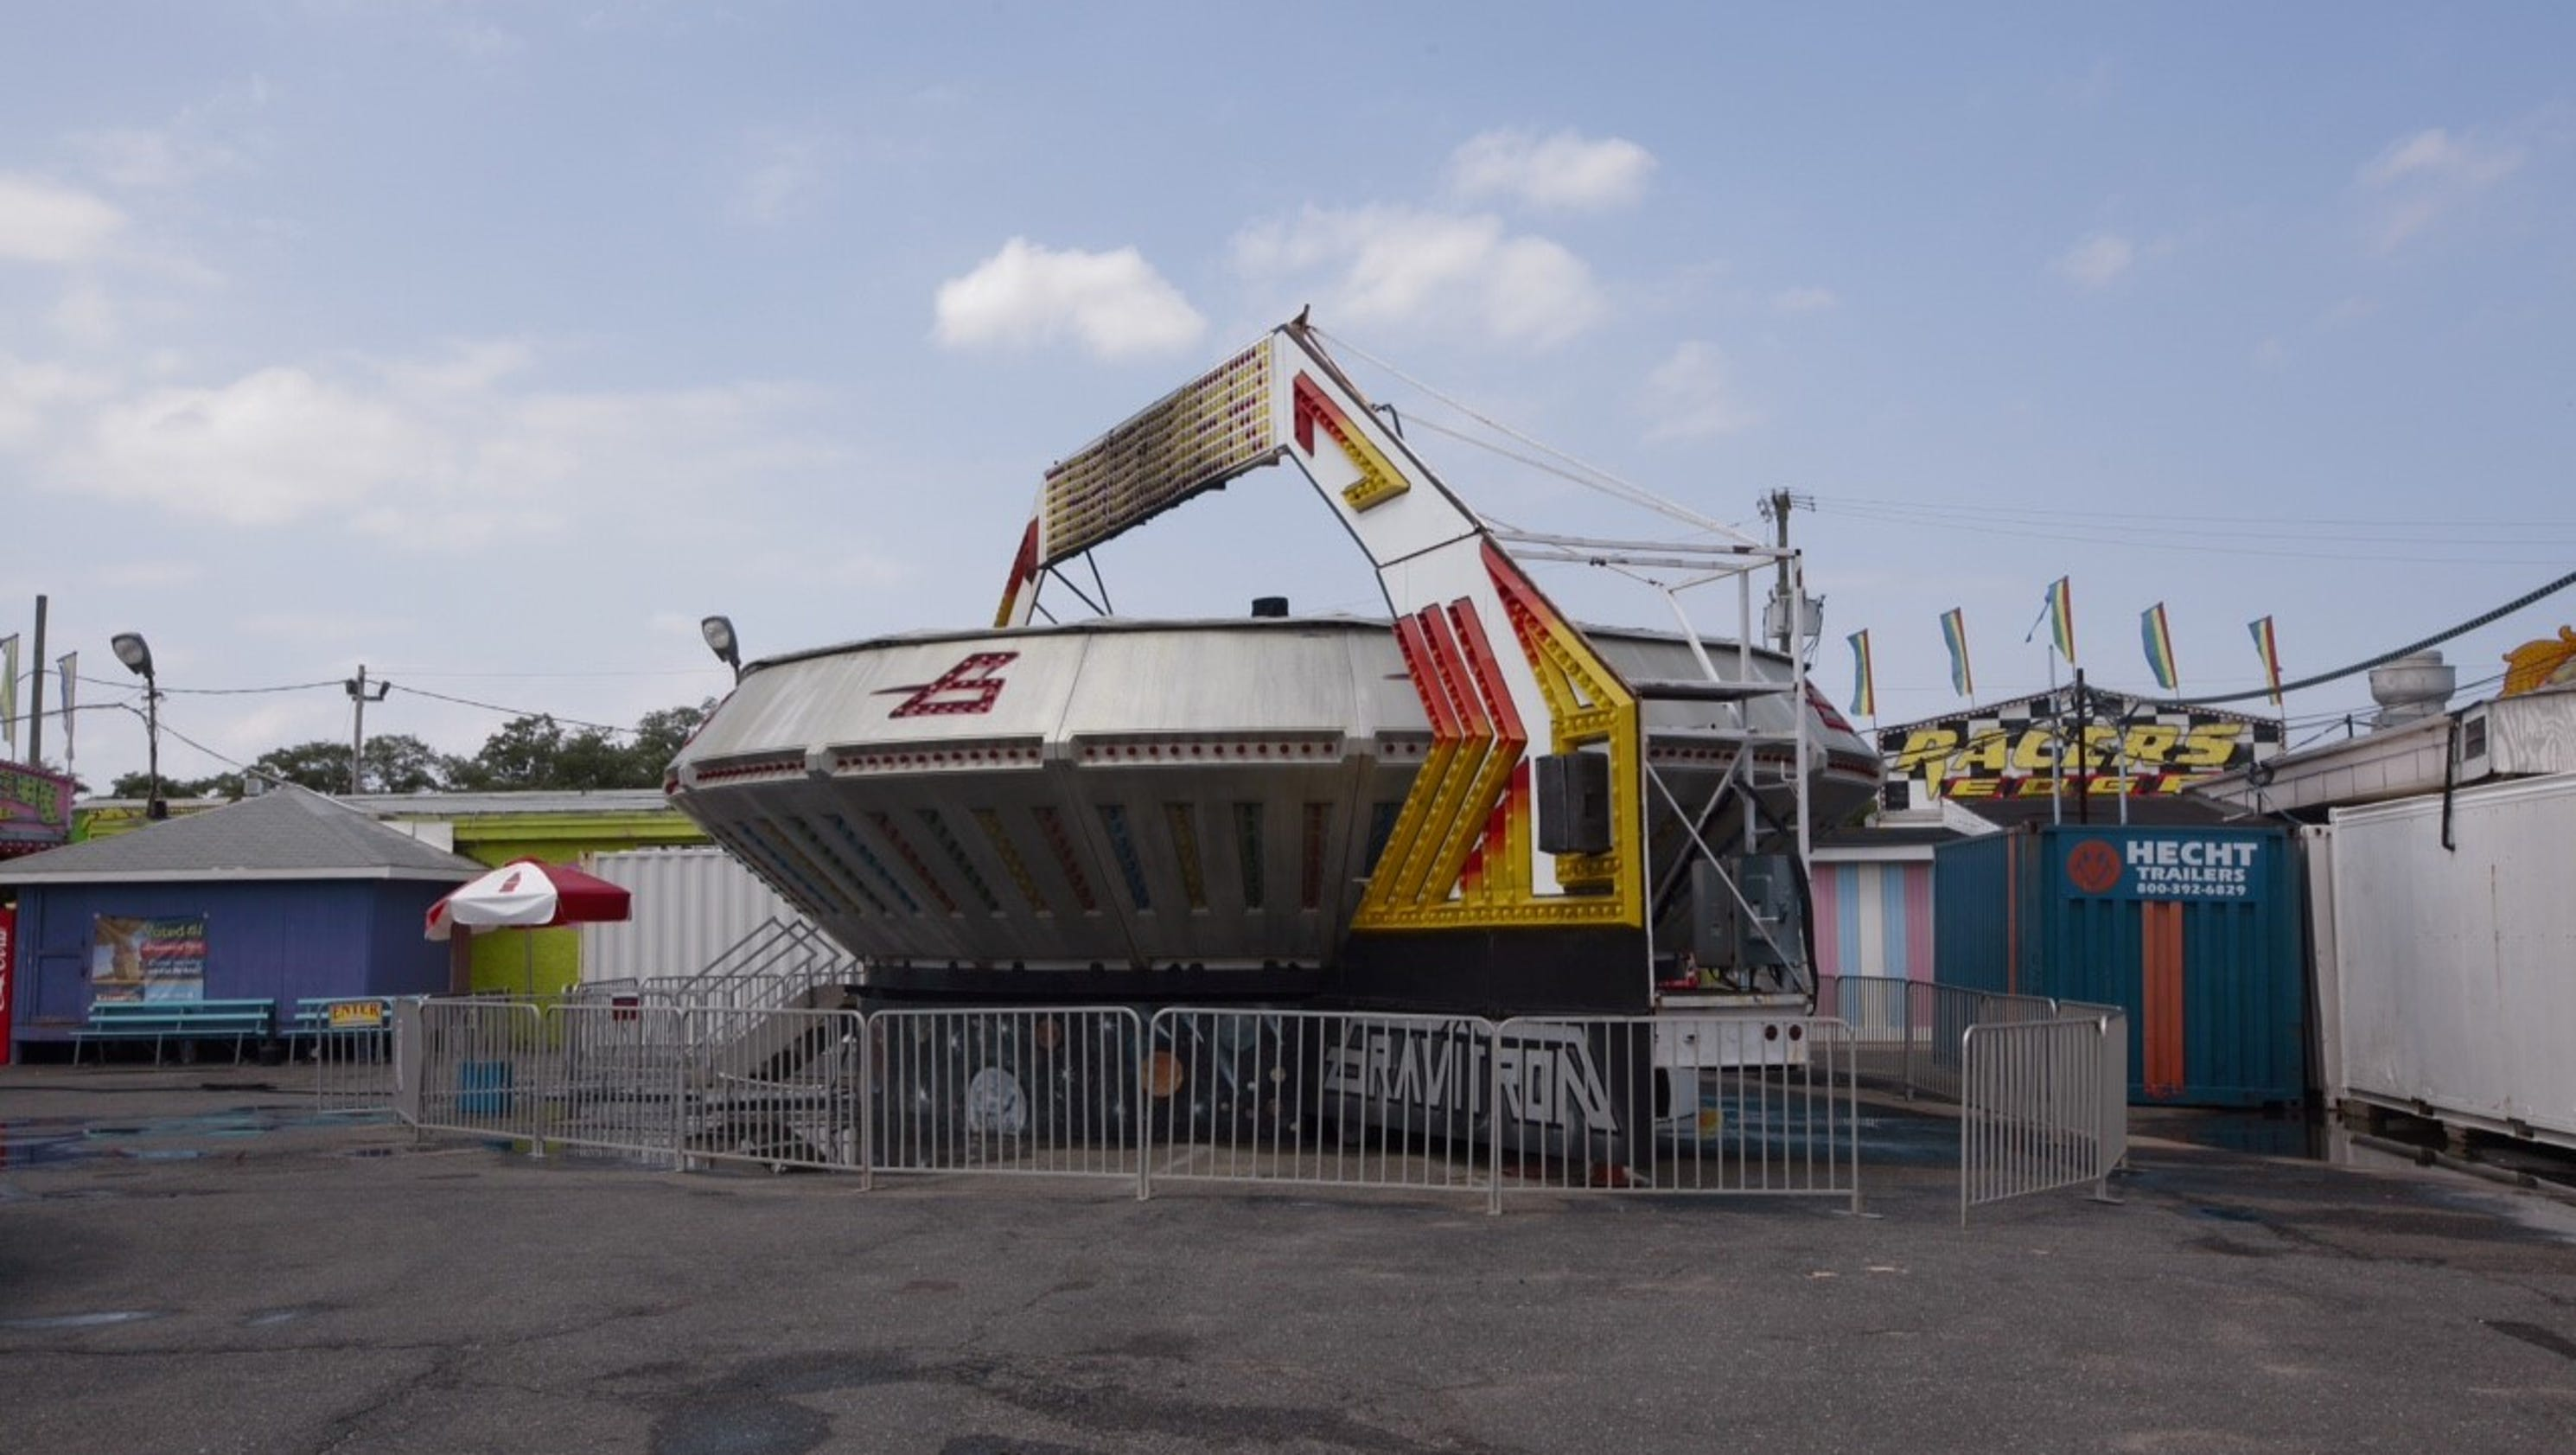 fire damages keansburg amusement park ride. Black Bedroom Furniture Sets. Home Design Ideas